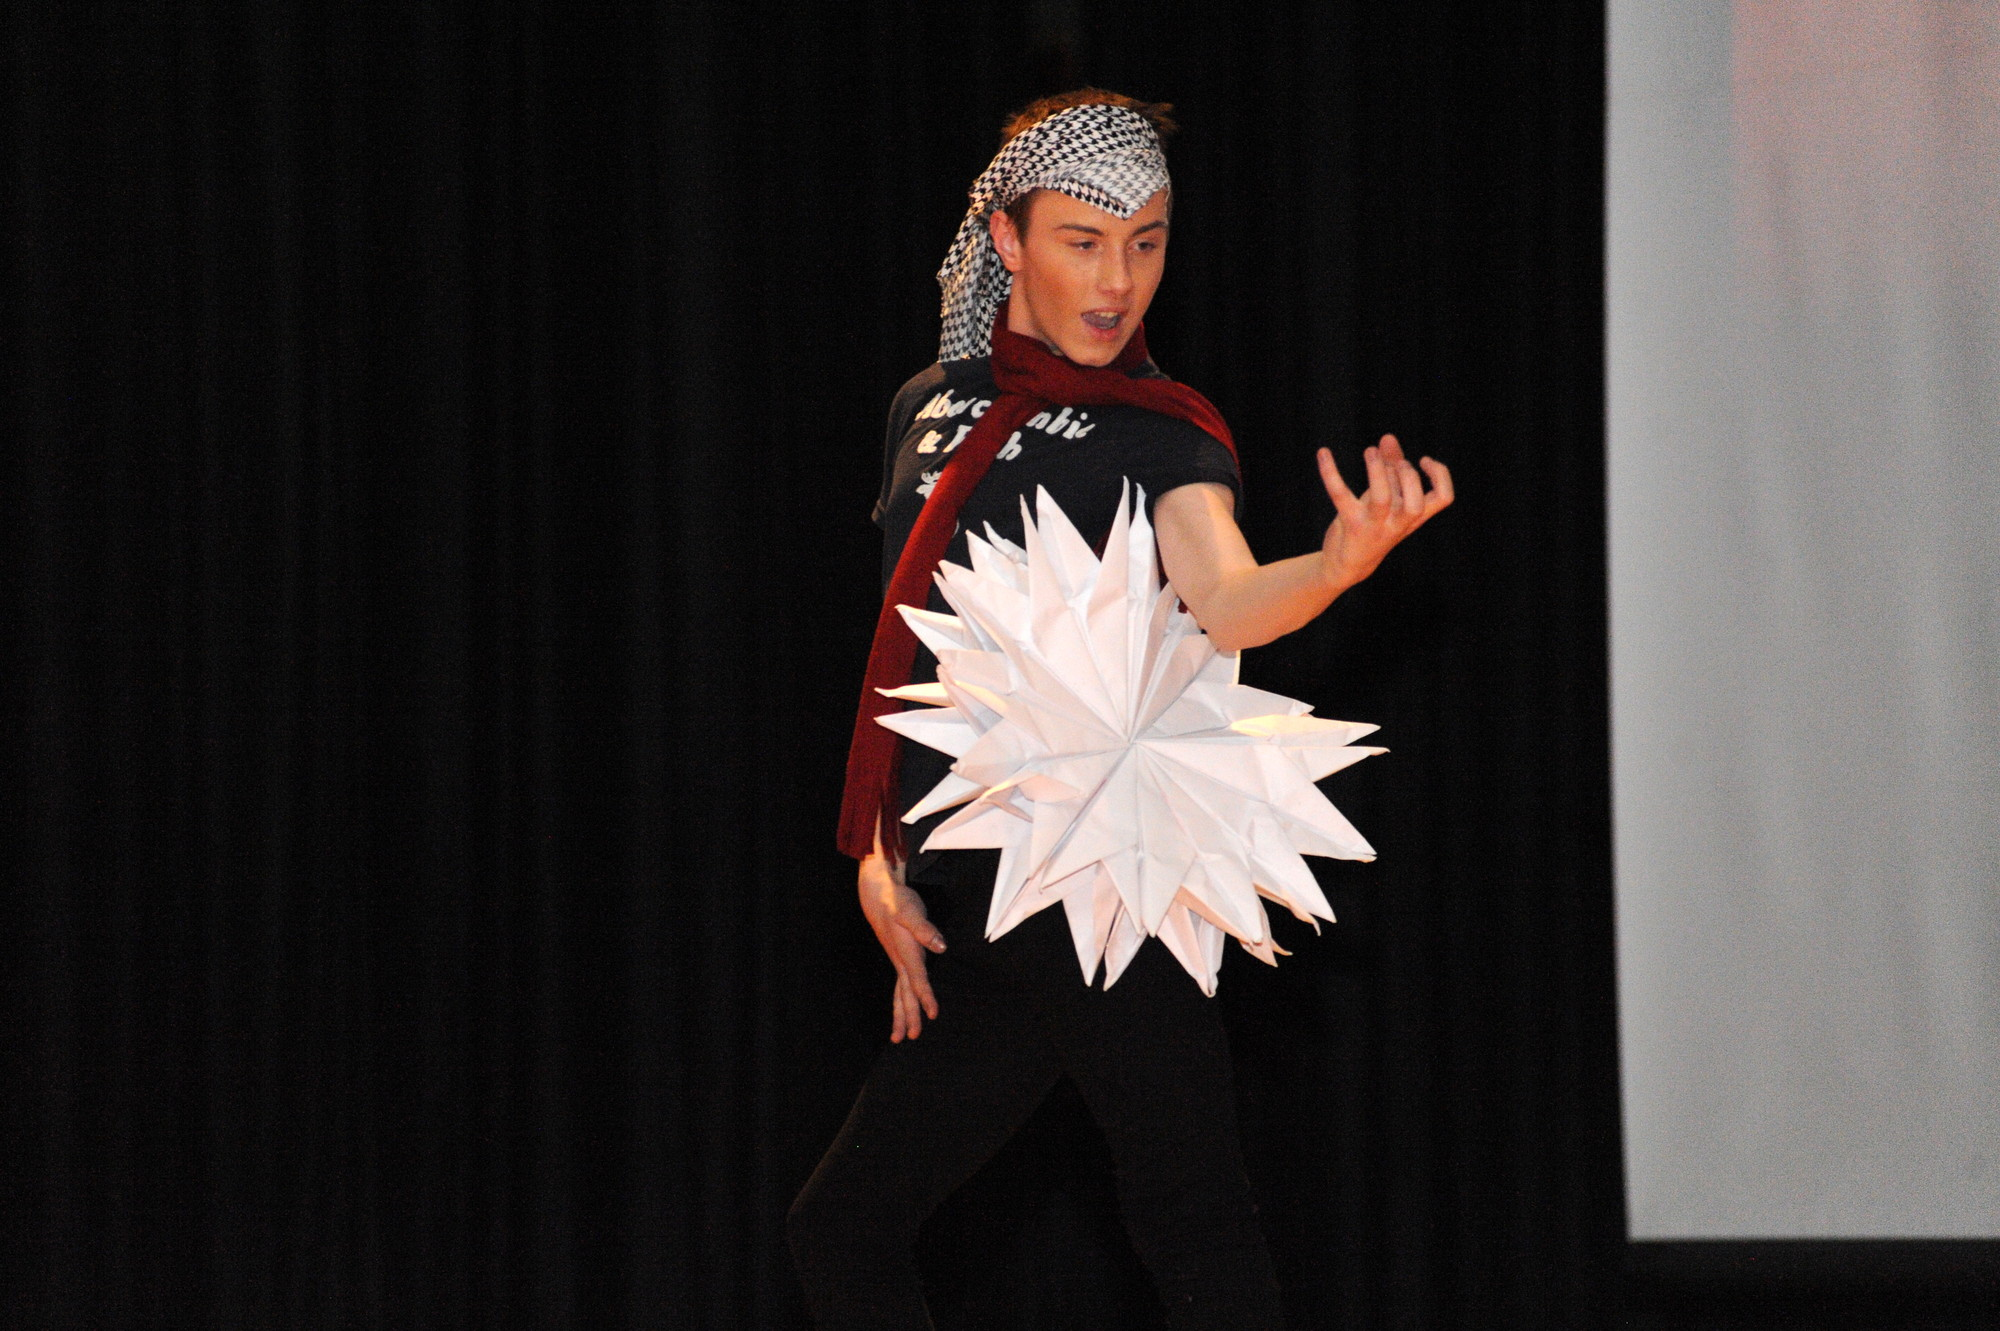 Freshman Sean Flynn performed a dance routine to 'Bad Romance' by Lady Gaga in a paper costume that took him more than 10 hours to create.